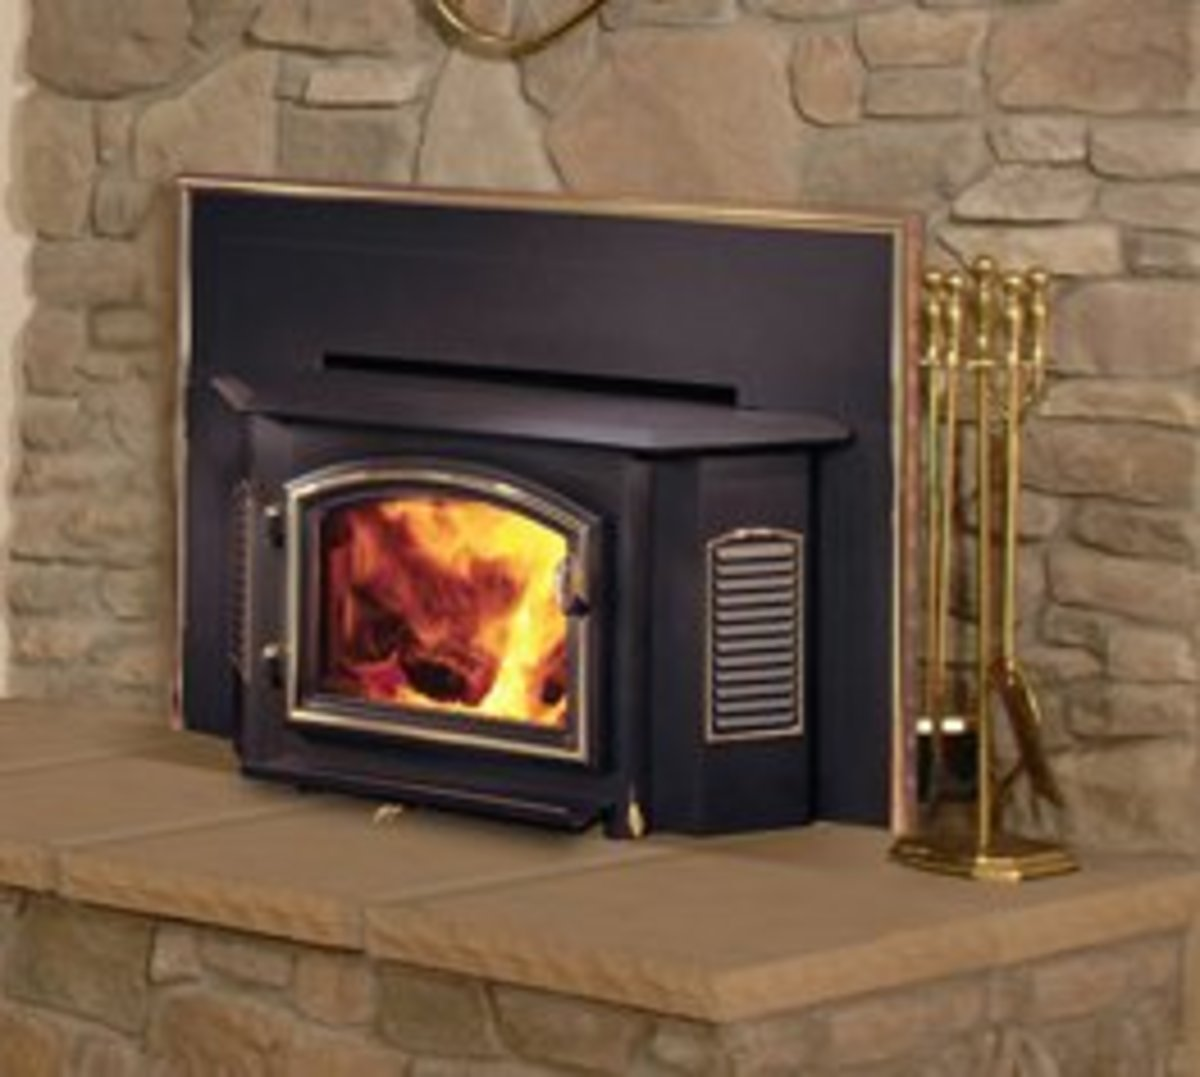 what to know before you buy a wood stove or pellet stove dengarden rh dengarden com buy wood fireplace sydney buy wood fireplace sydney